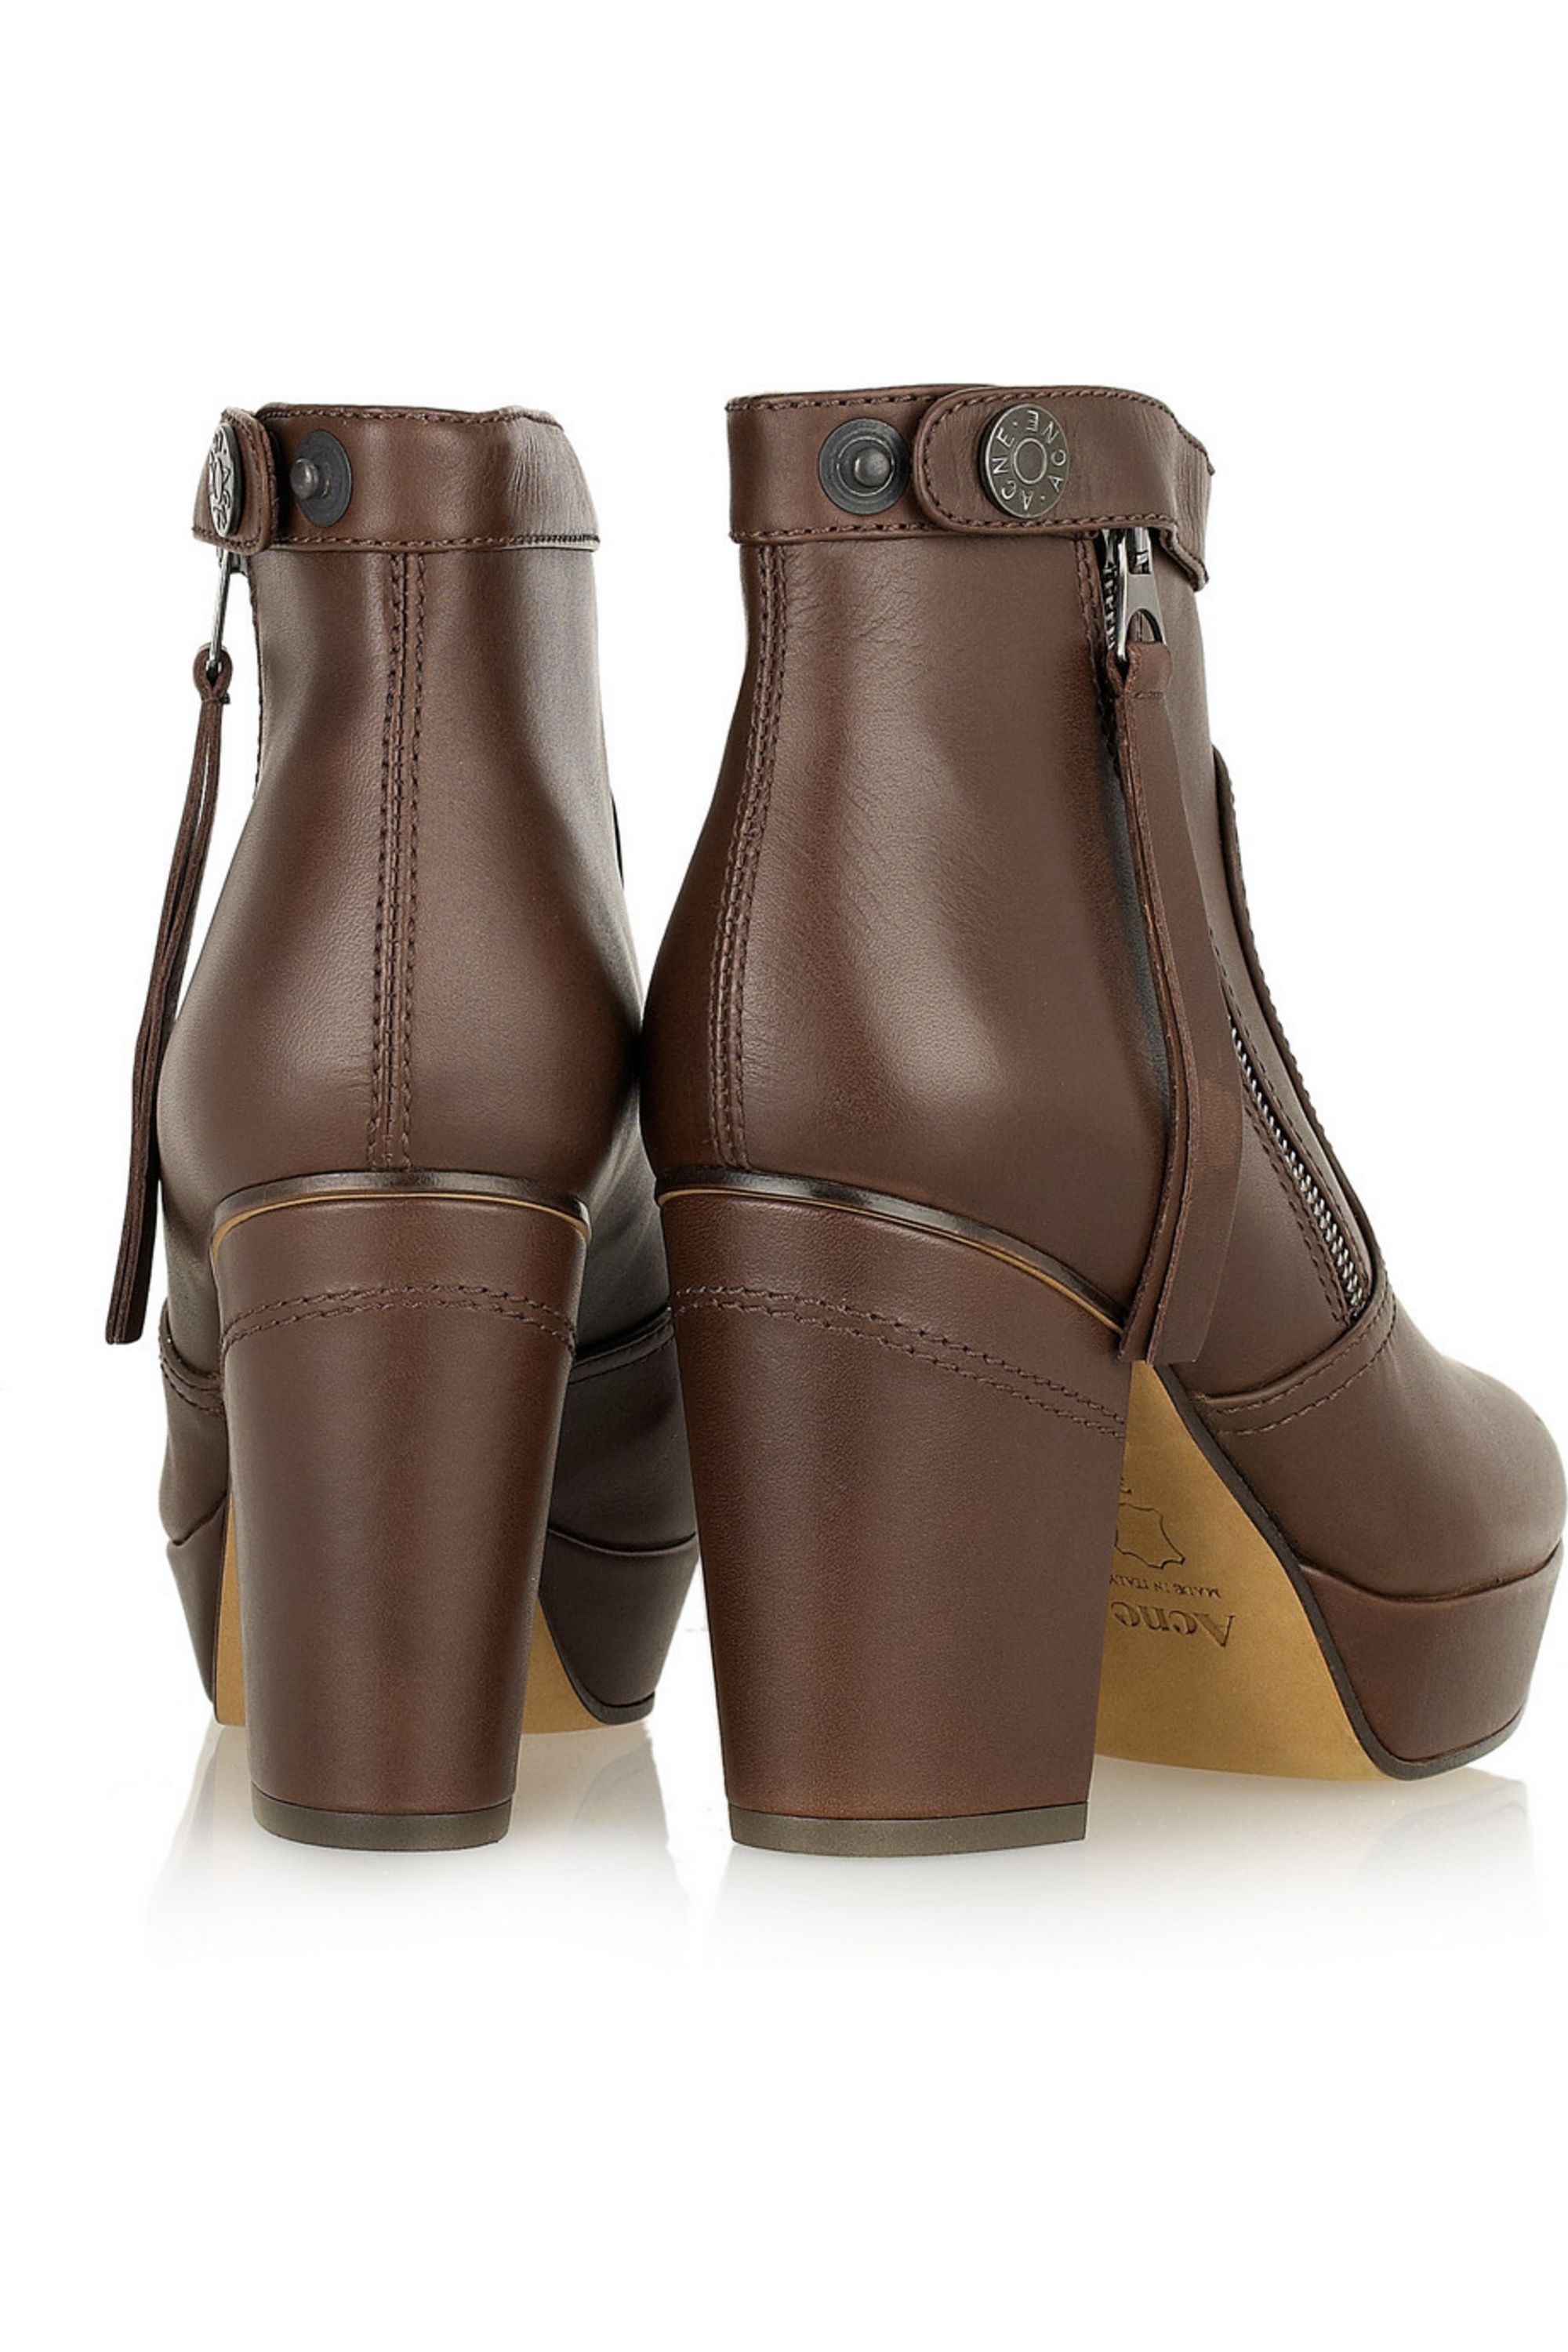 Acne Studios Track leather ankle boots